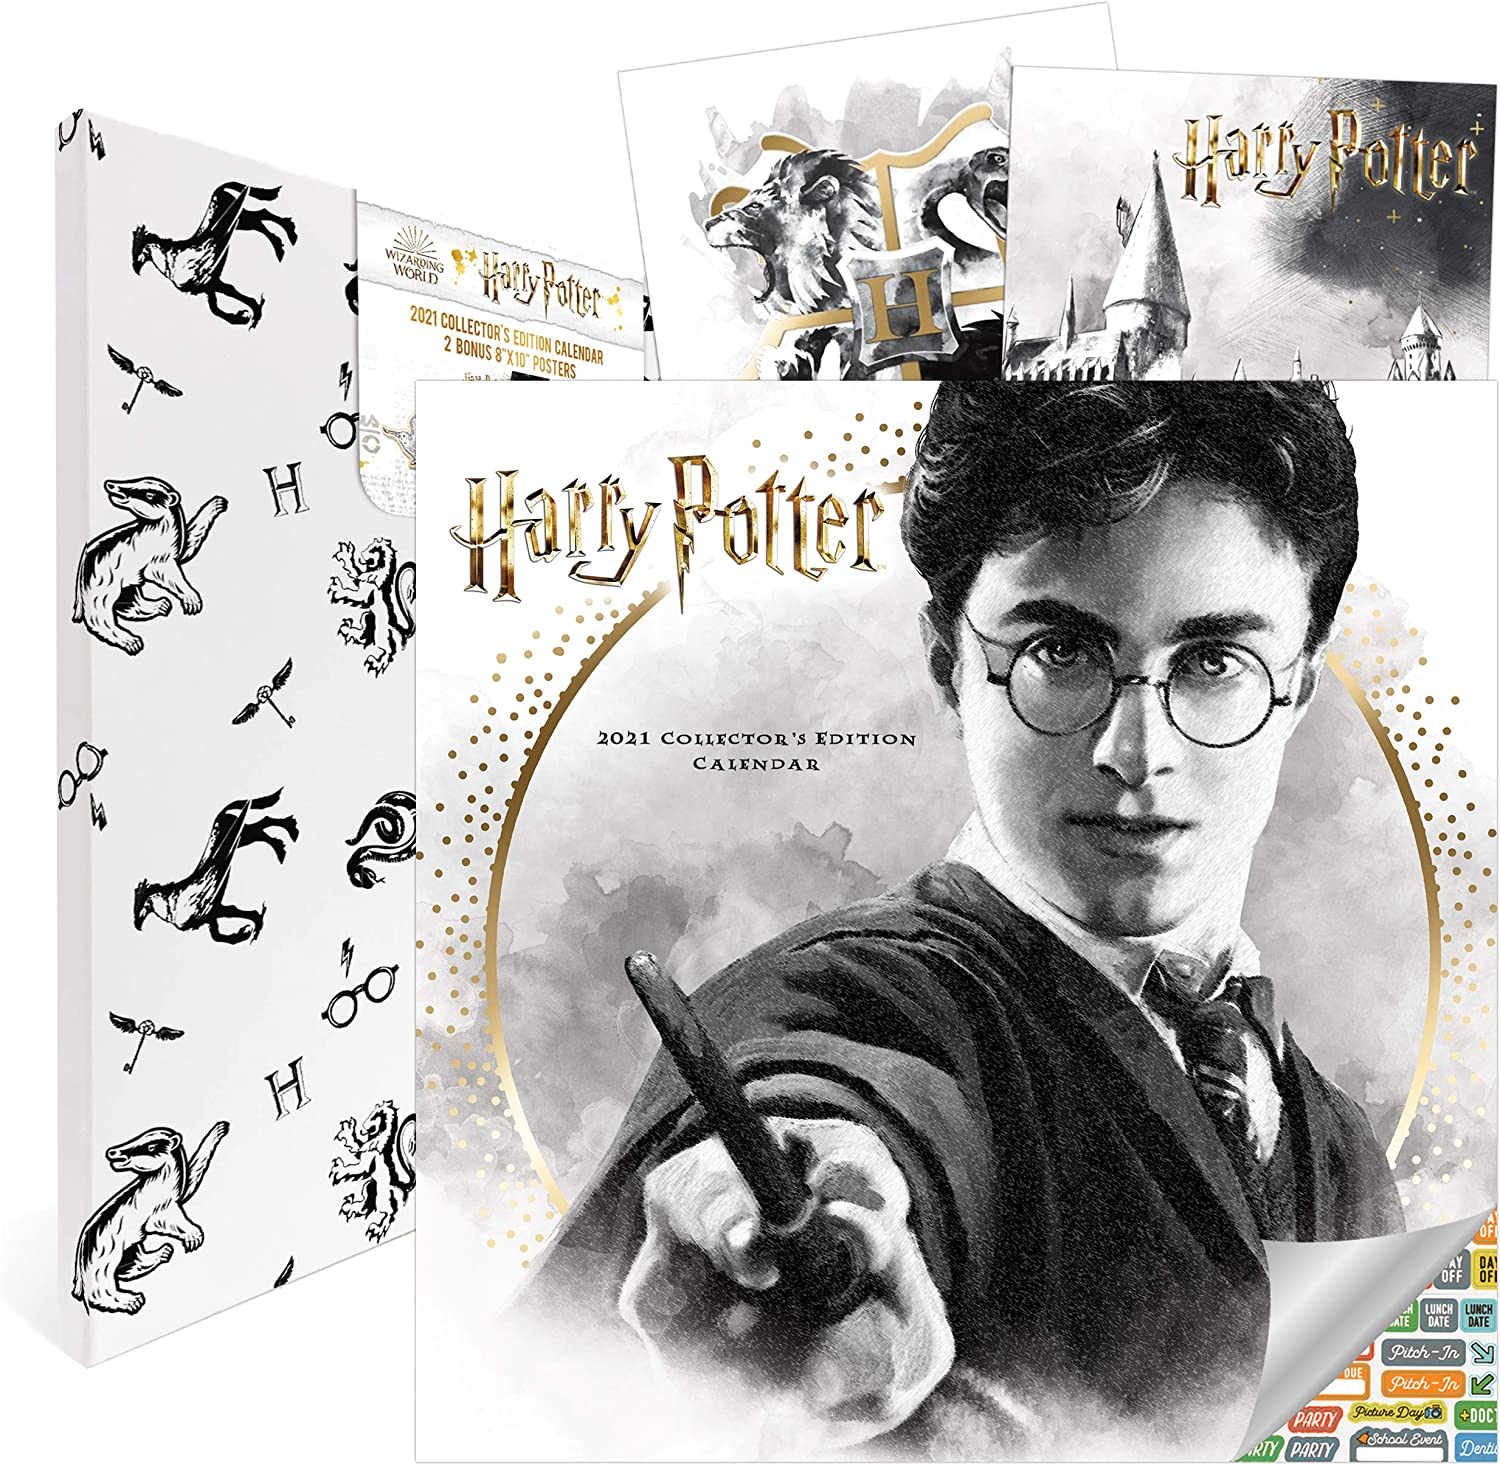 Harry Potter Calendar 2021 Bundle - Deluxe 2021 Harry Potter Collector's Edition Calendar with Over 100 Calendar Stickers (Harry Potter Gifts, Office Supplies)